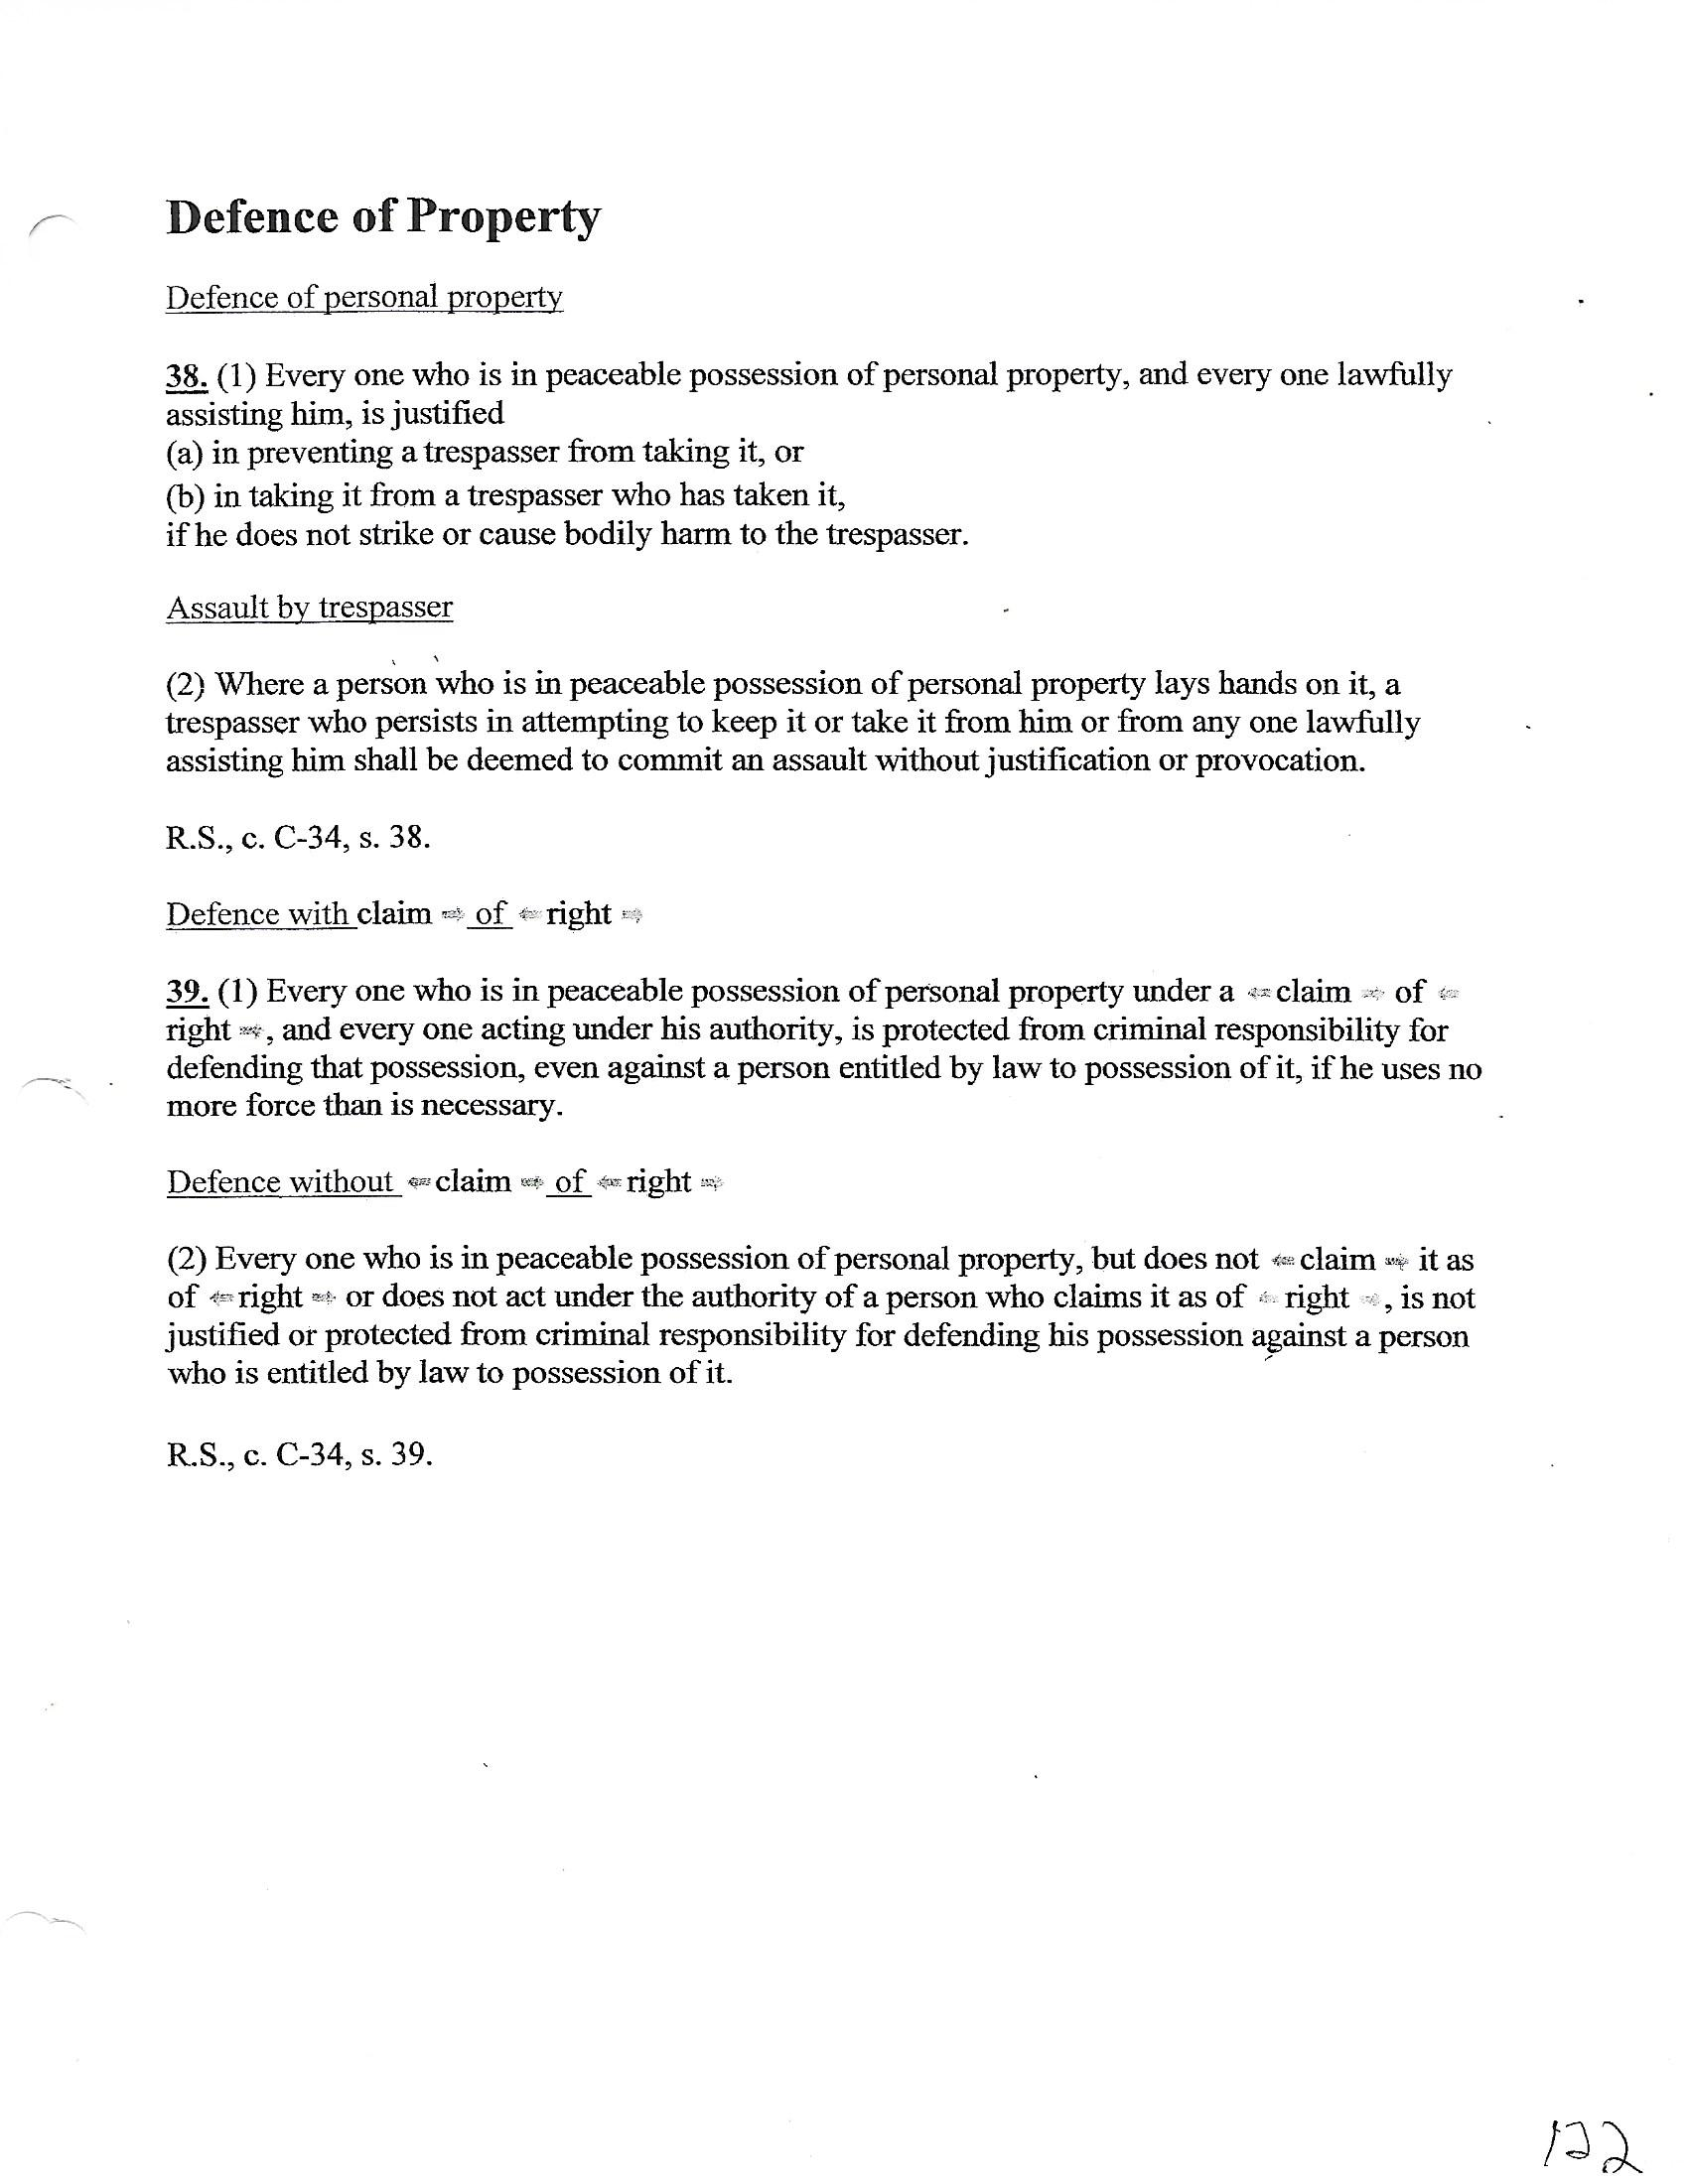 Defense Property Claim of Right Criminal